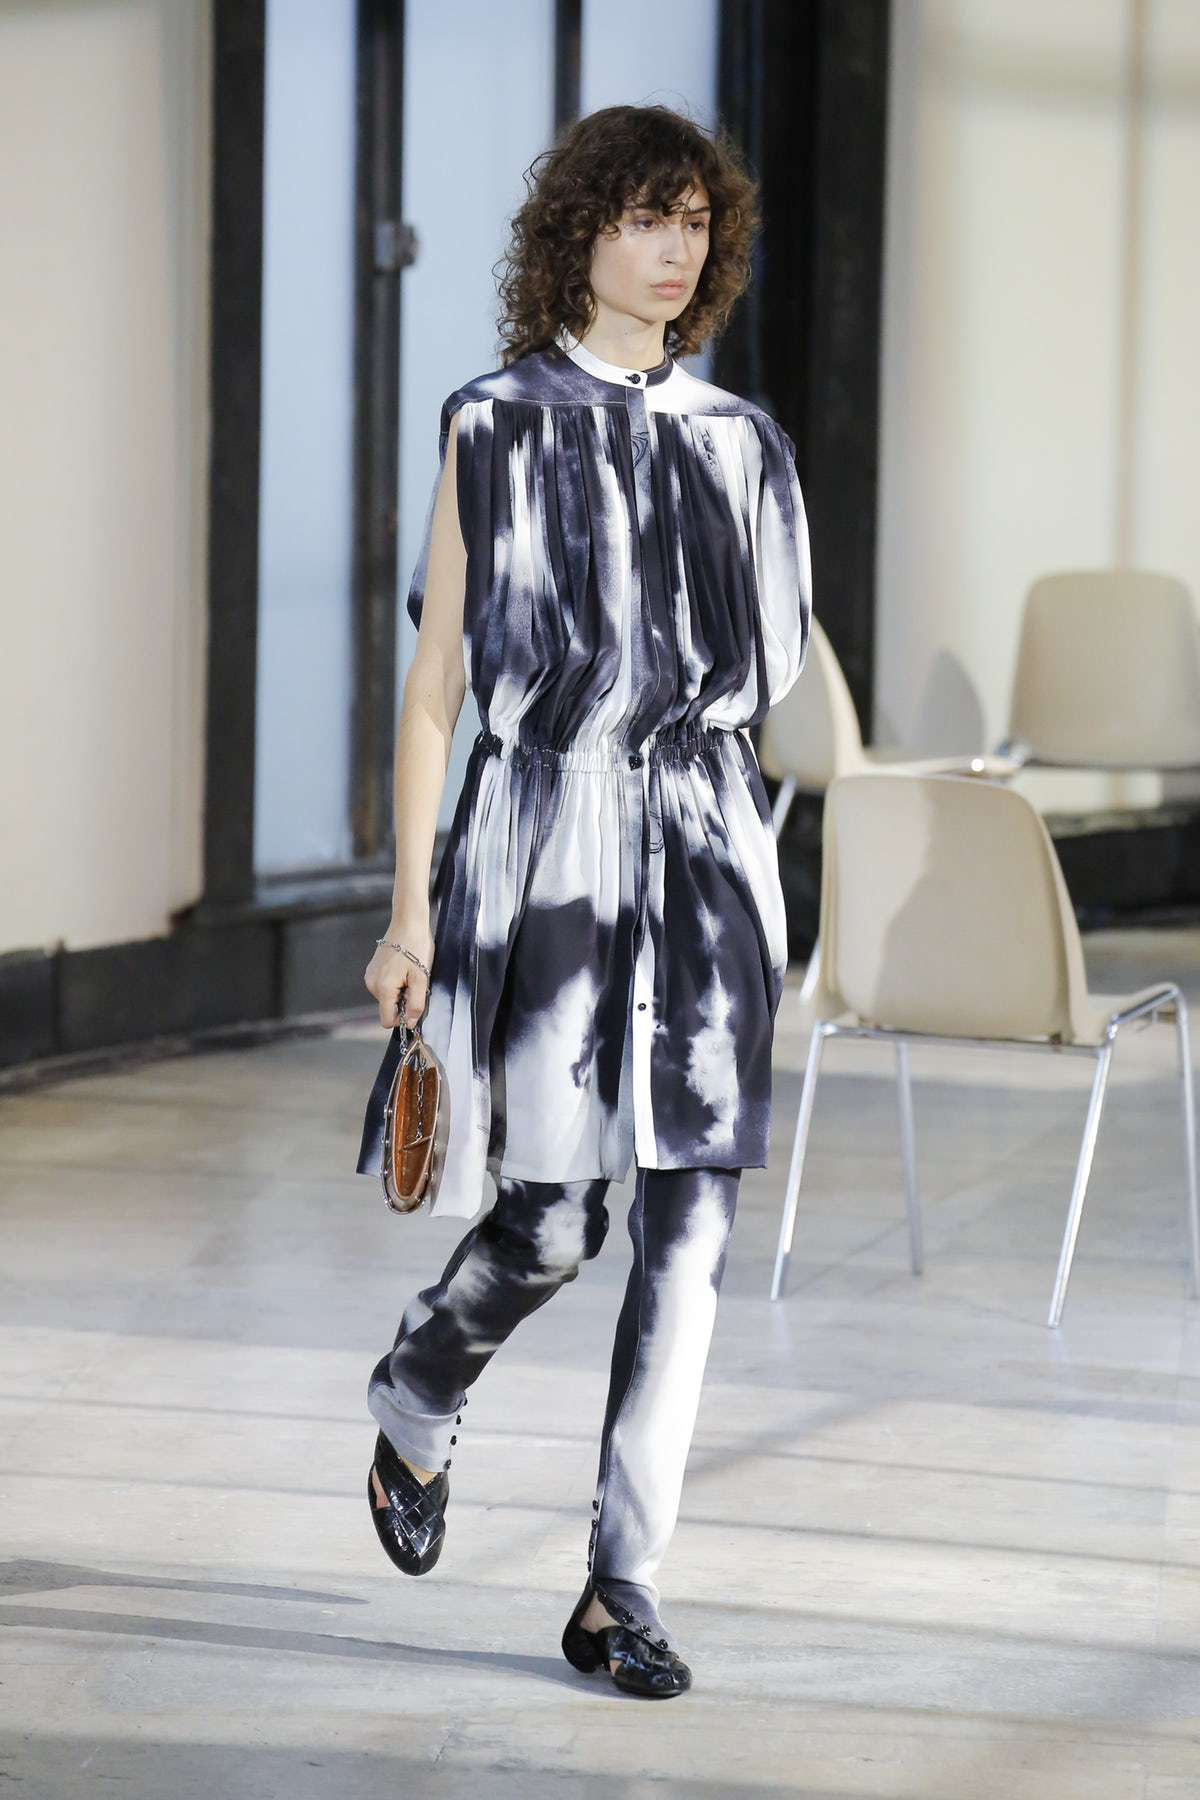 Lemaire SS 2018, image via The Business Of Fashion